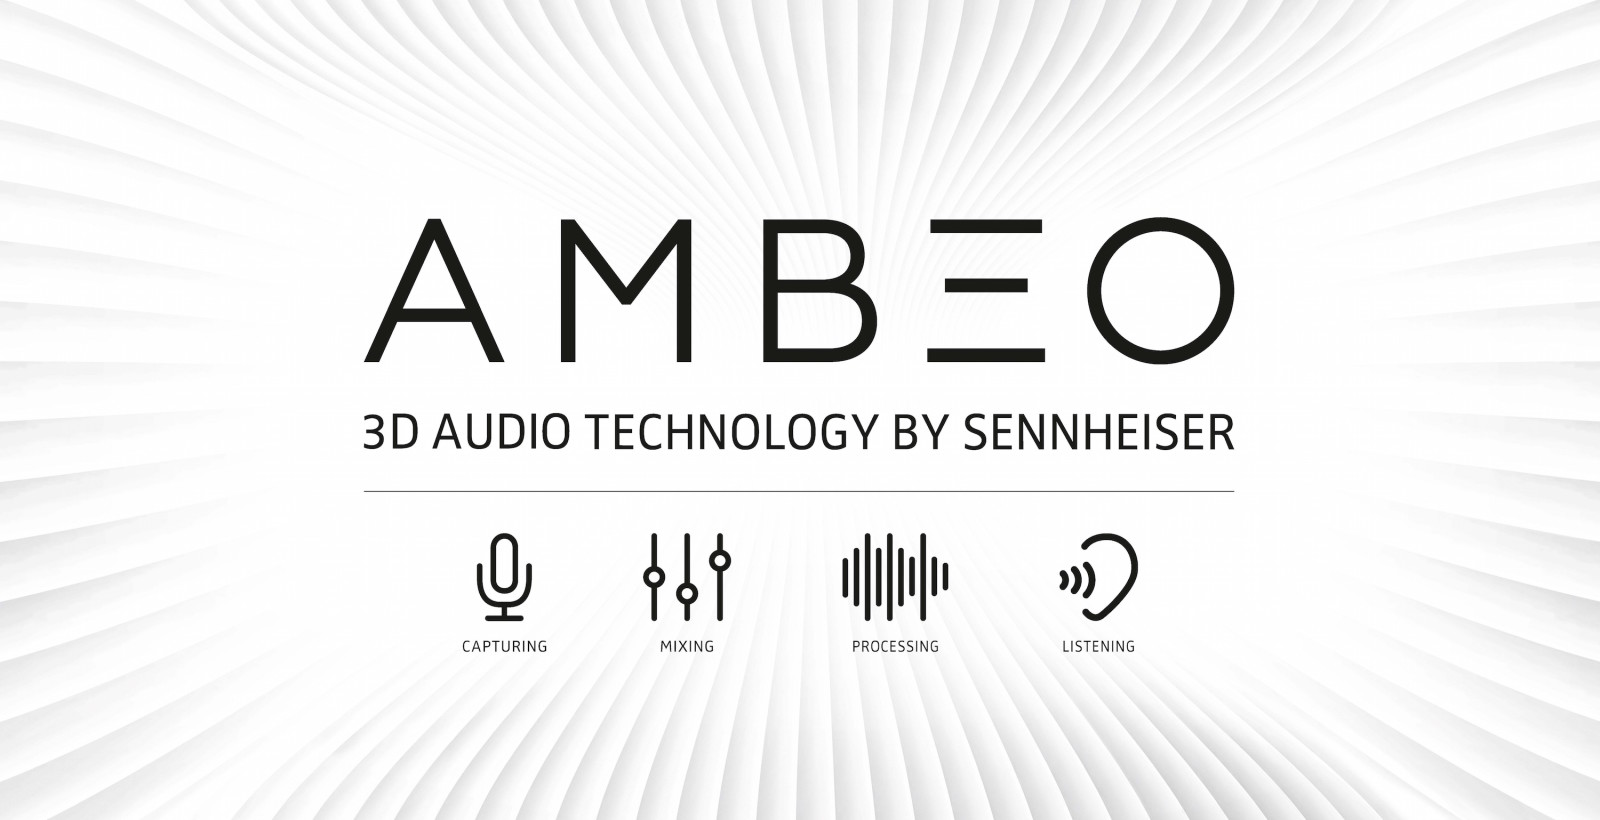 Ambeo 3D Audio Technology by Sennheiser